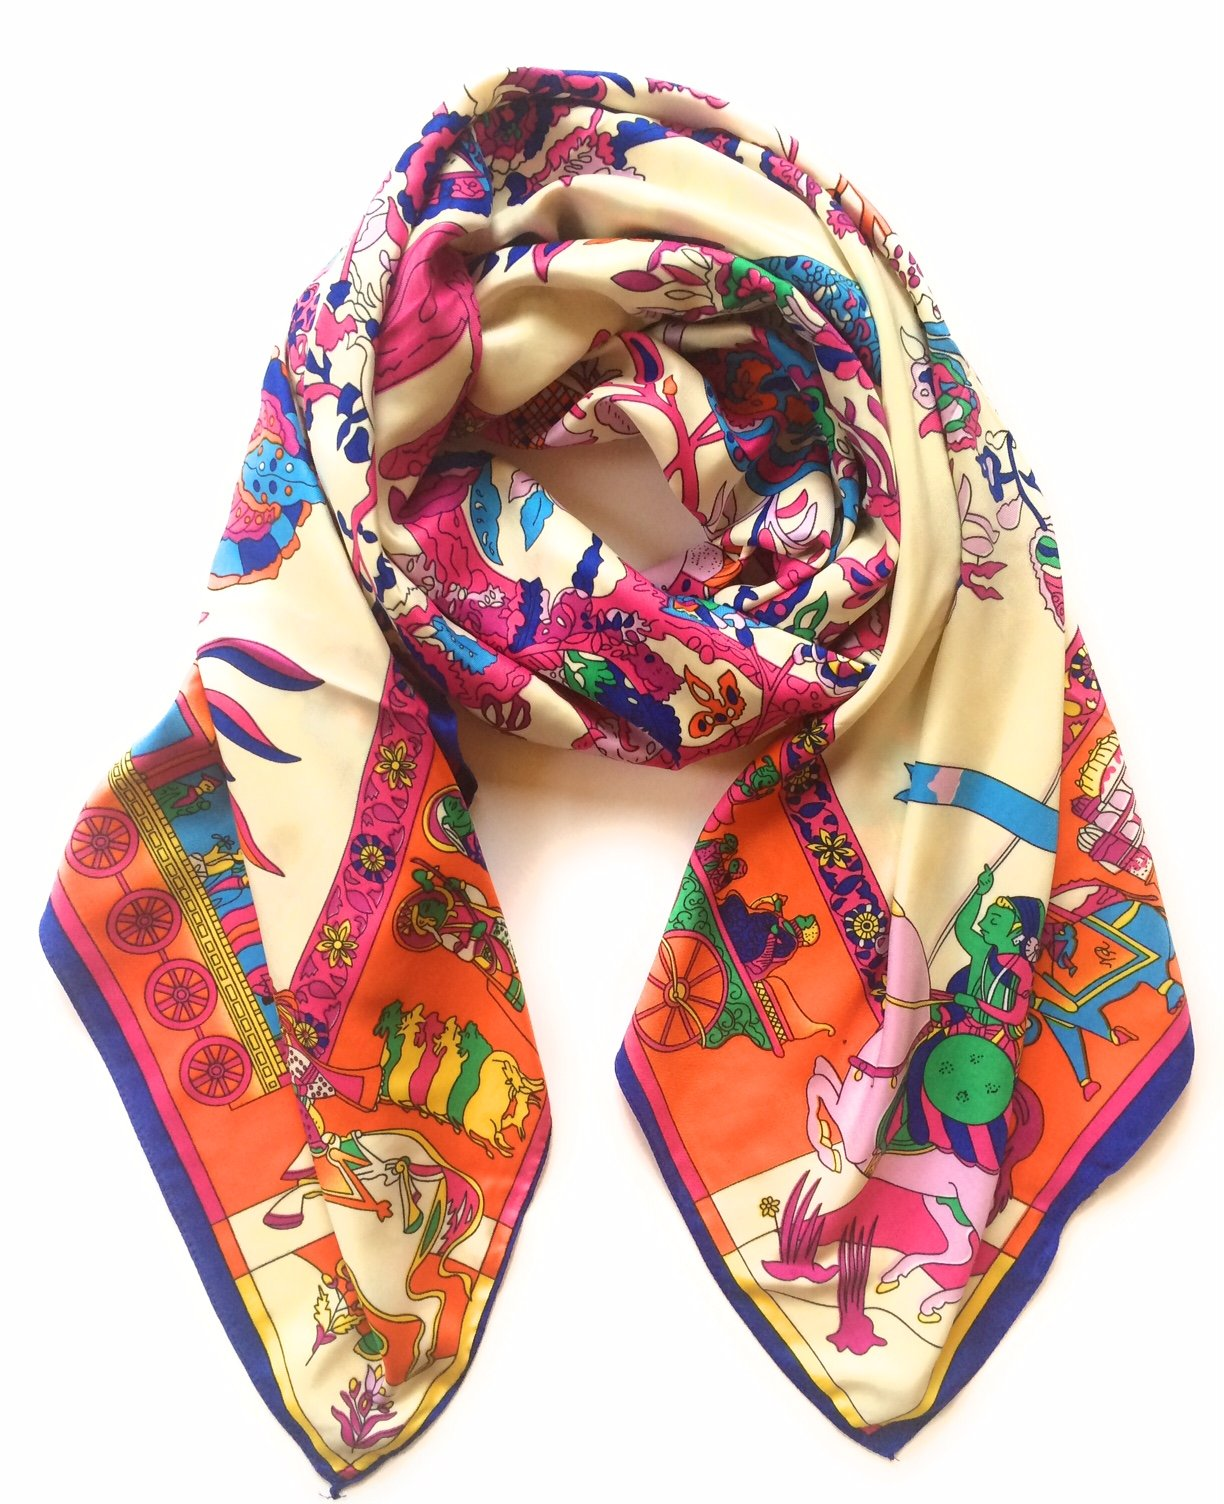 SILK SQUARE IN STYLE OF HERMES SCARF SILK SHAWL SILK WRAP WOMENS FASHION SCARF